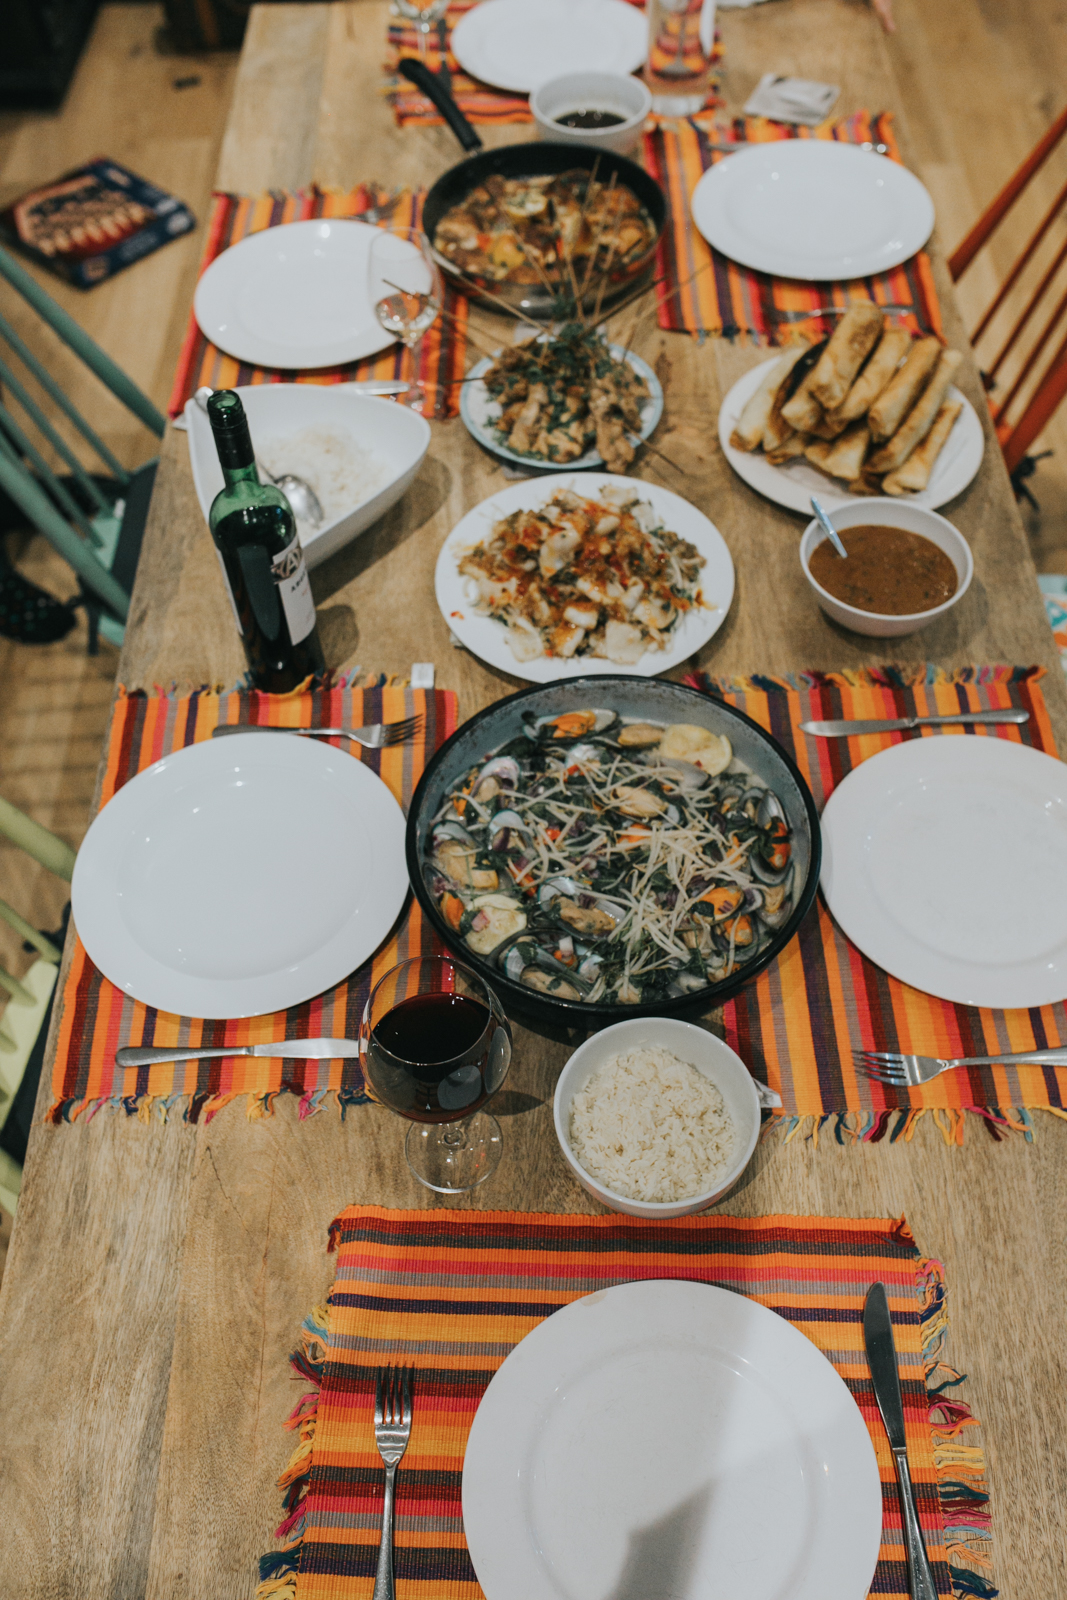 Mussels in Coconut Milk, Spicy Squid Salad, Spring Rolls, Chicken and Pork Satay and Baked Lemon Chicken